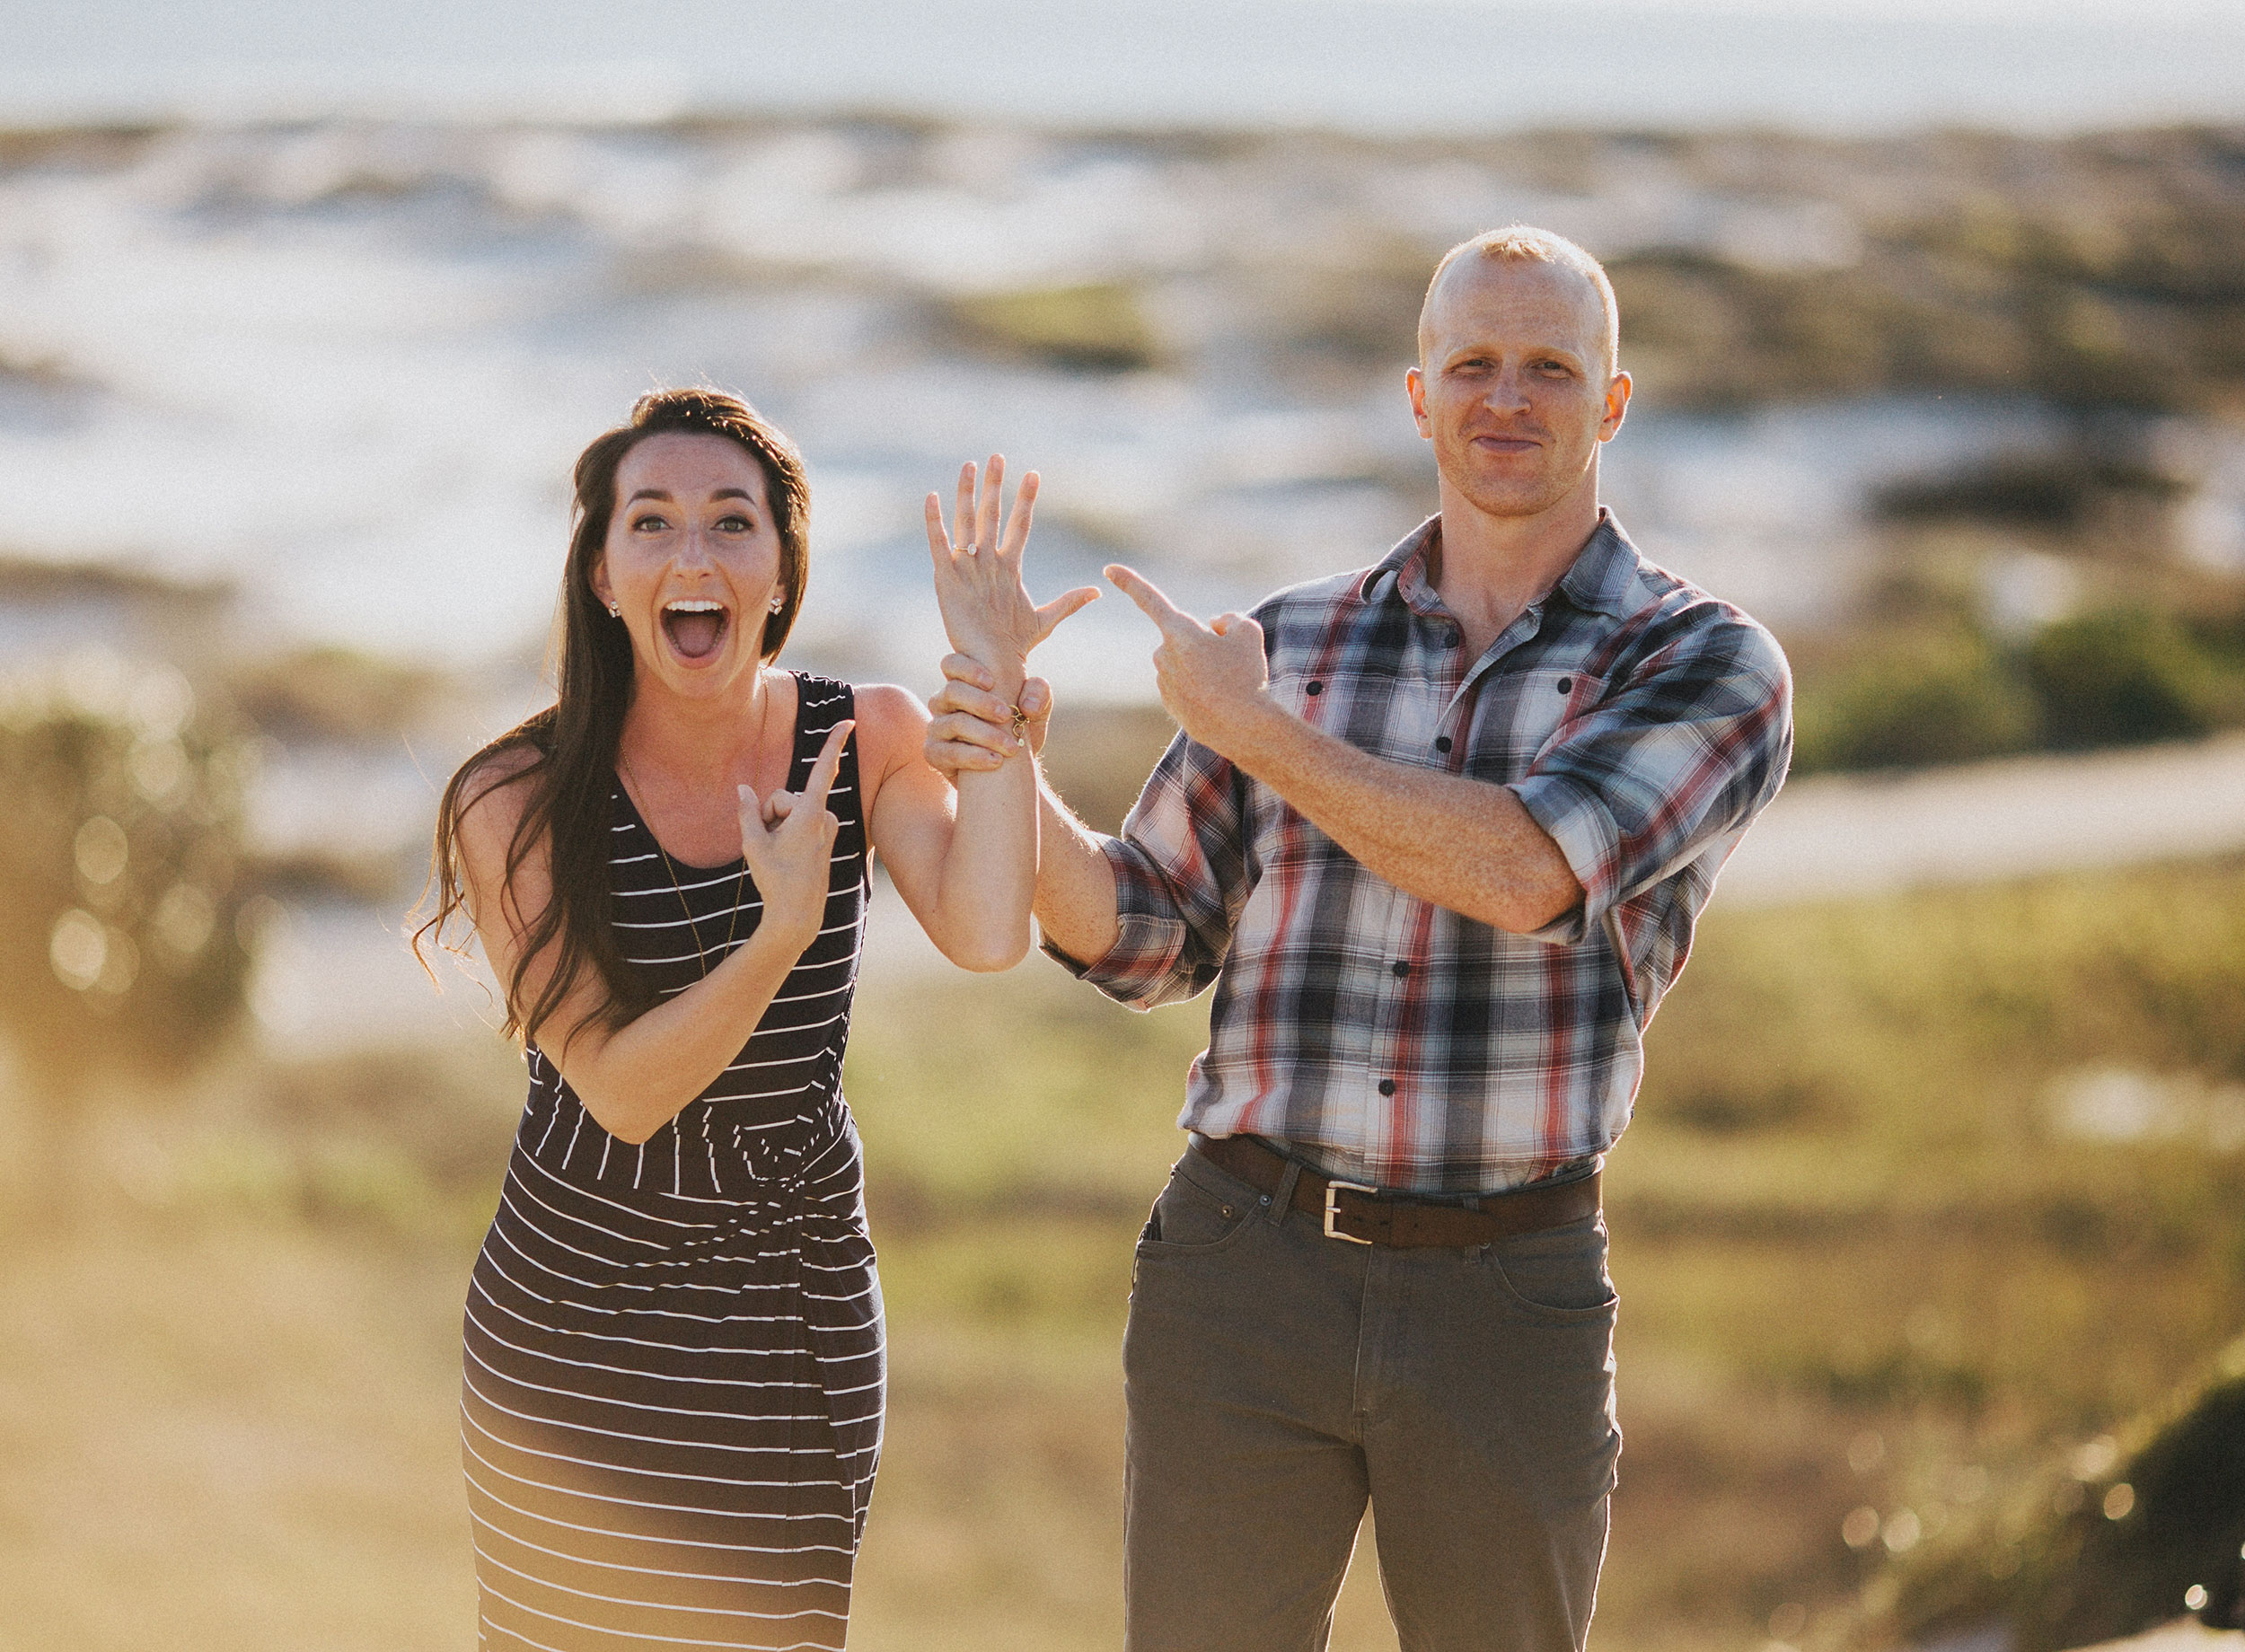 proposal-engagement-photographer-05.JPG